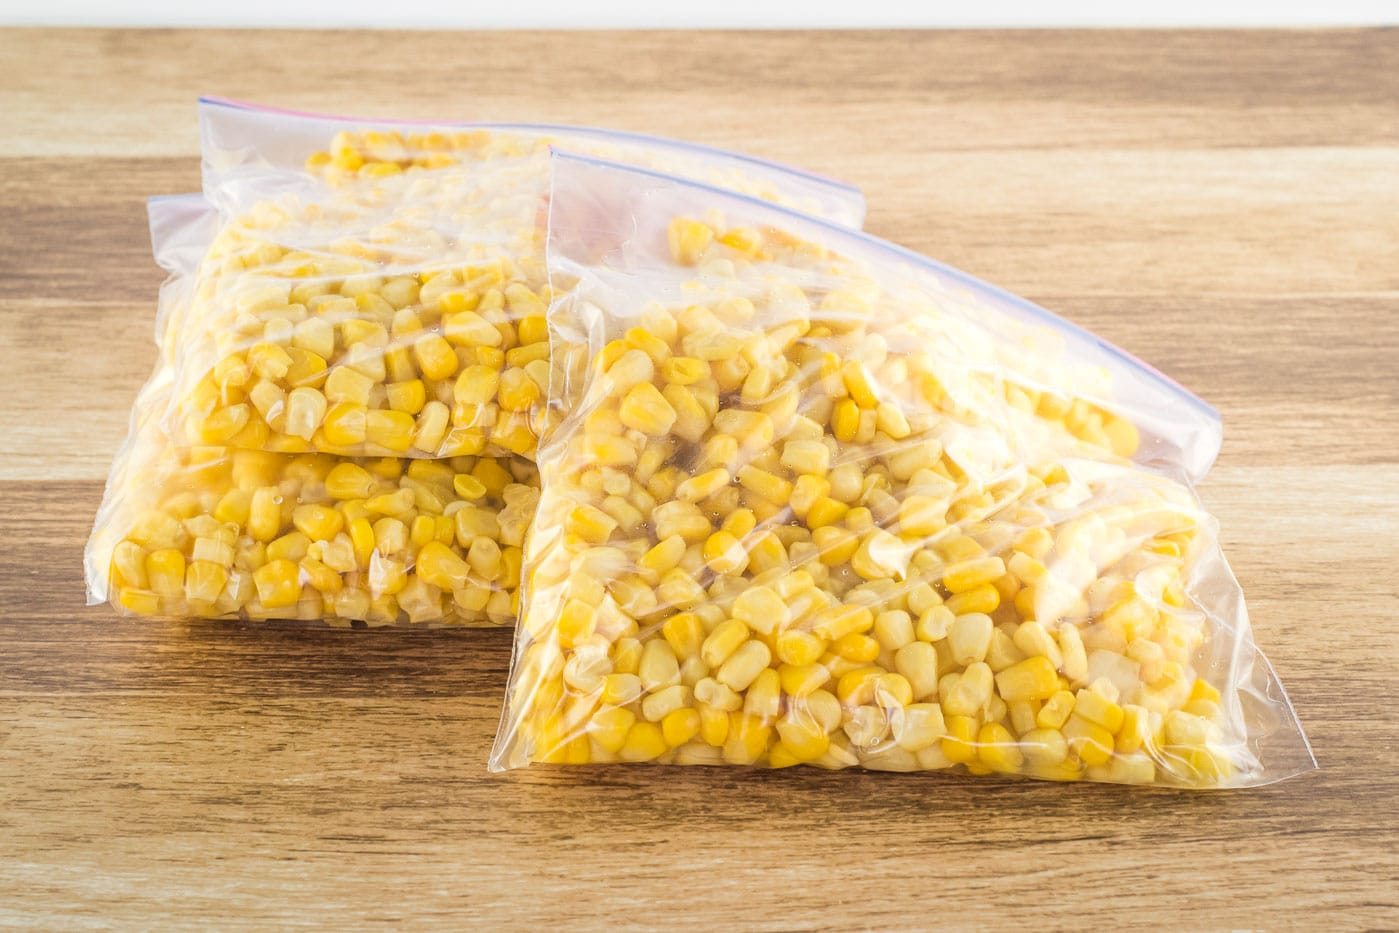 3 Freezer bags filled with corn on a wooden table.